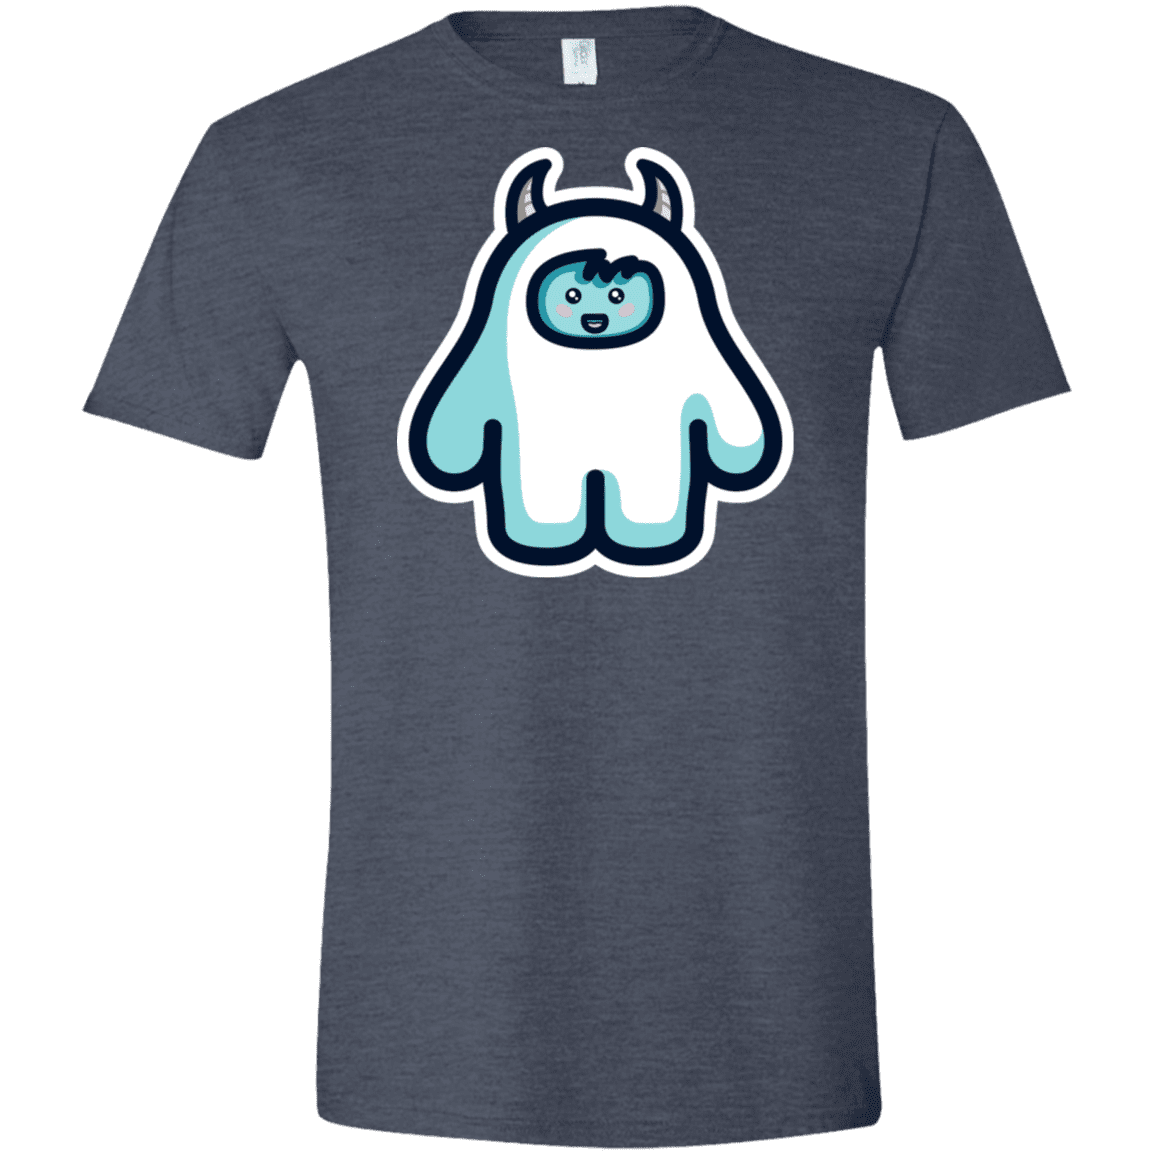 T-Shirts Heather Navy / S Kawaii Cute Yeti Men's Semi-Fitted Softstyle